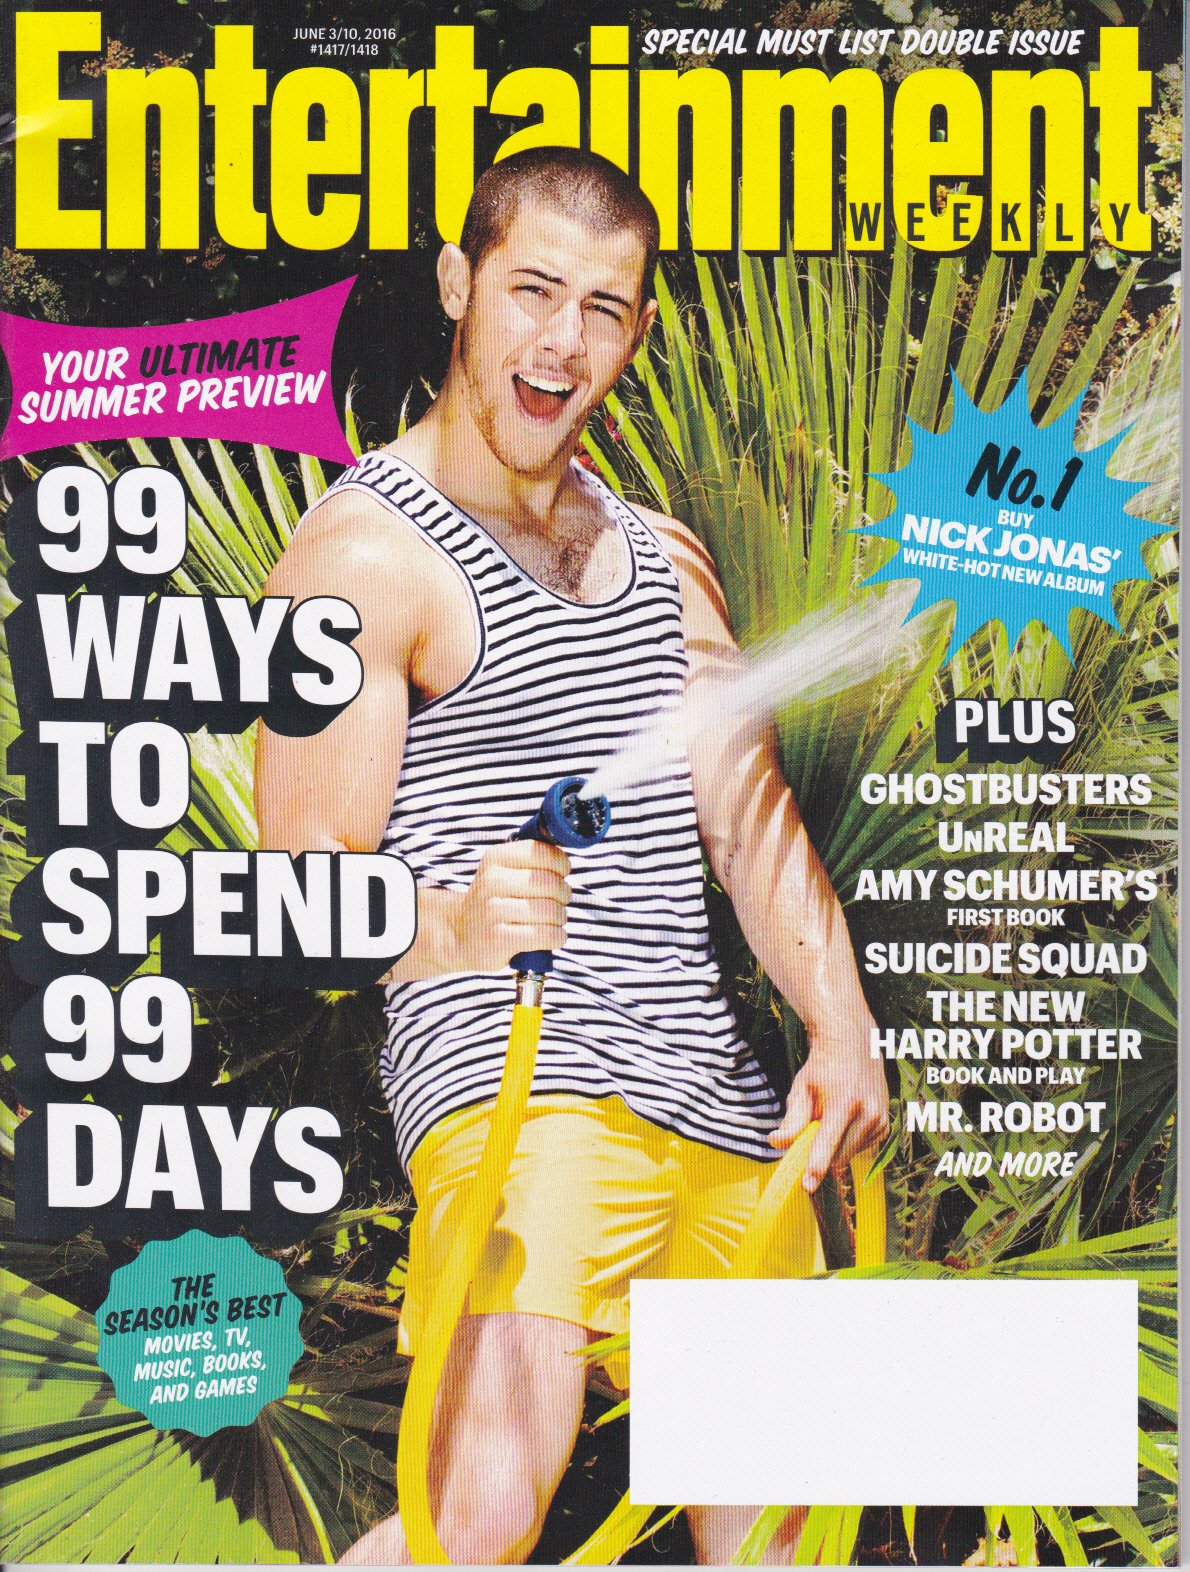 Download Entertainment WEEKLY June 3 - 10, 2016 NICK JONAS Cover 99 Ways to Spend 99 Days pdf